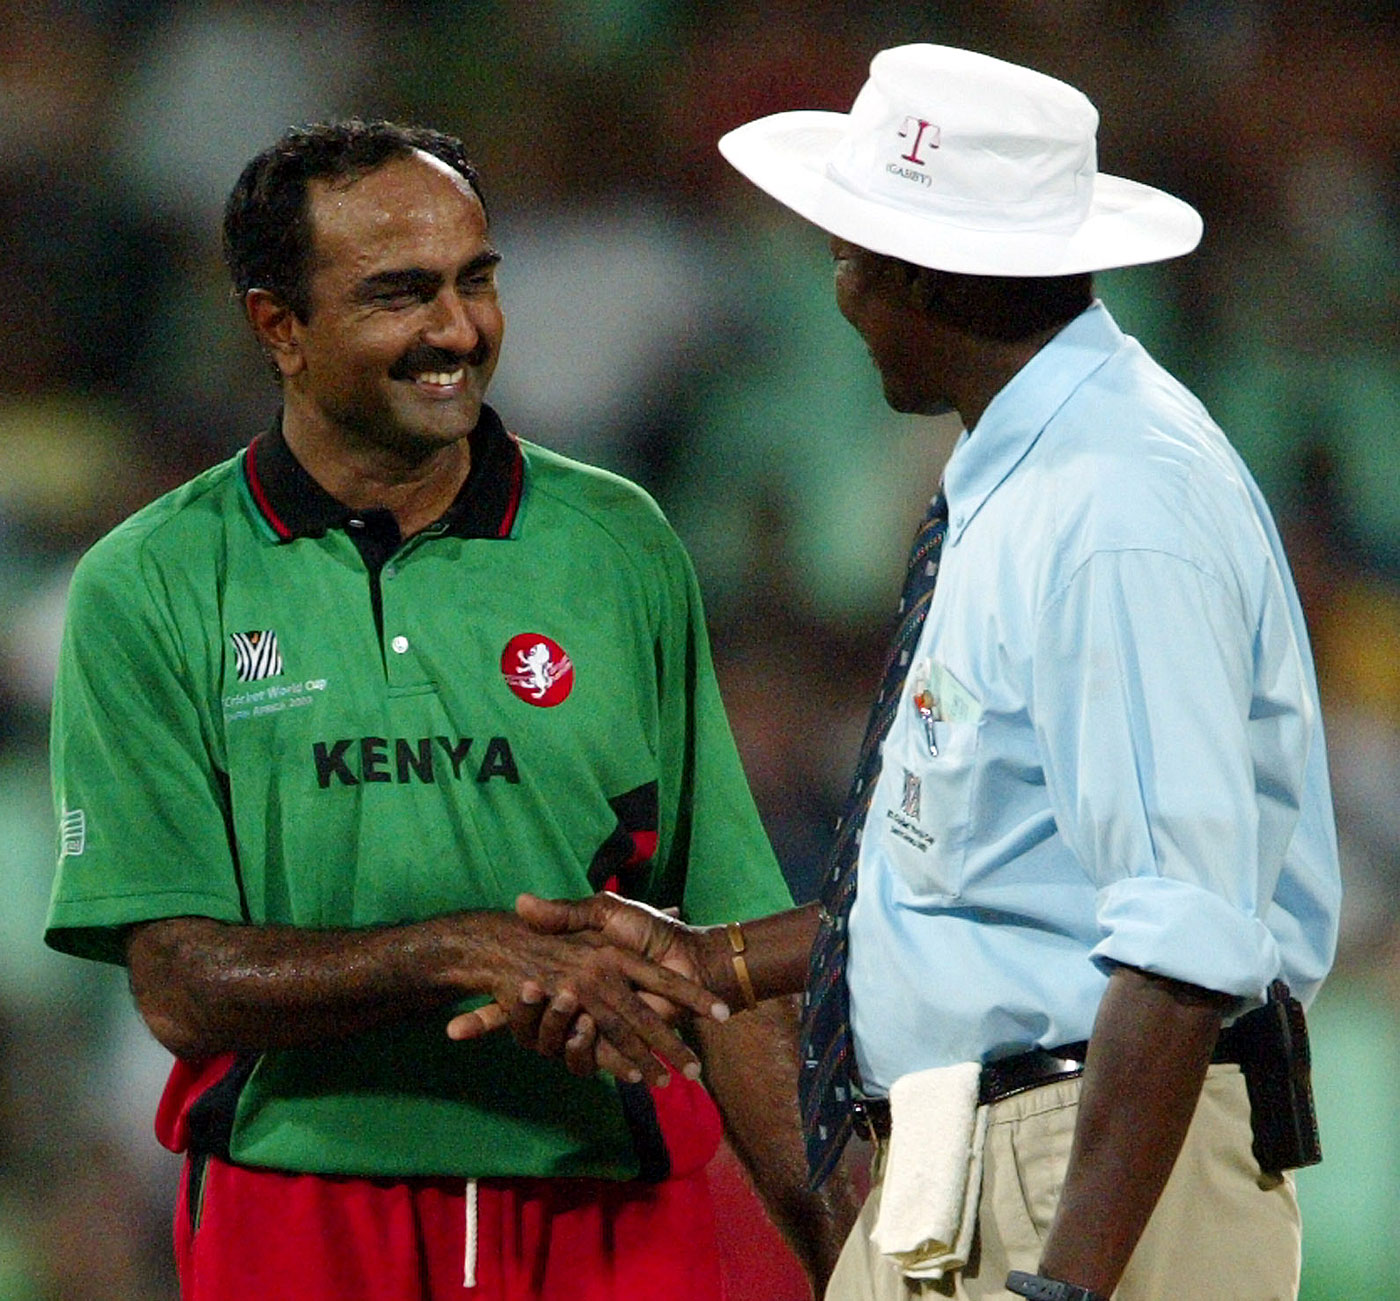 The umpire who turned fan: Steve Bucknor shakes Aasif Karim's hand during the match against Australia in Durban, 2003